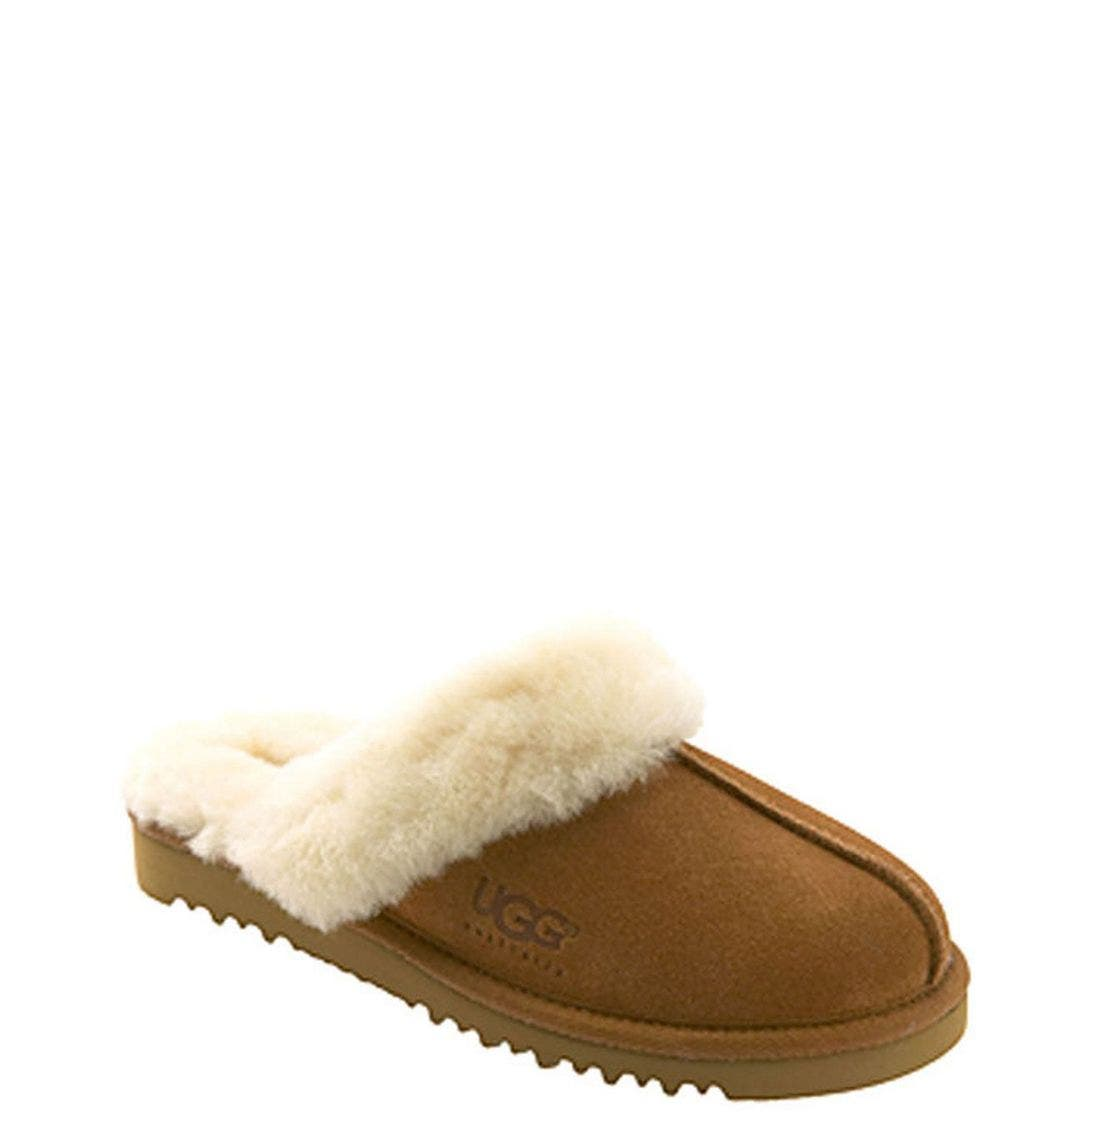 Alternate Image 1 Selected - UGG® Cozy Scuff Slipper (Toddler, Little Kid & Big Kid)